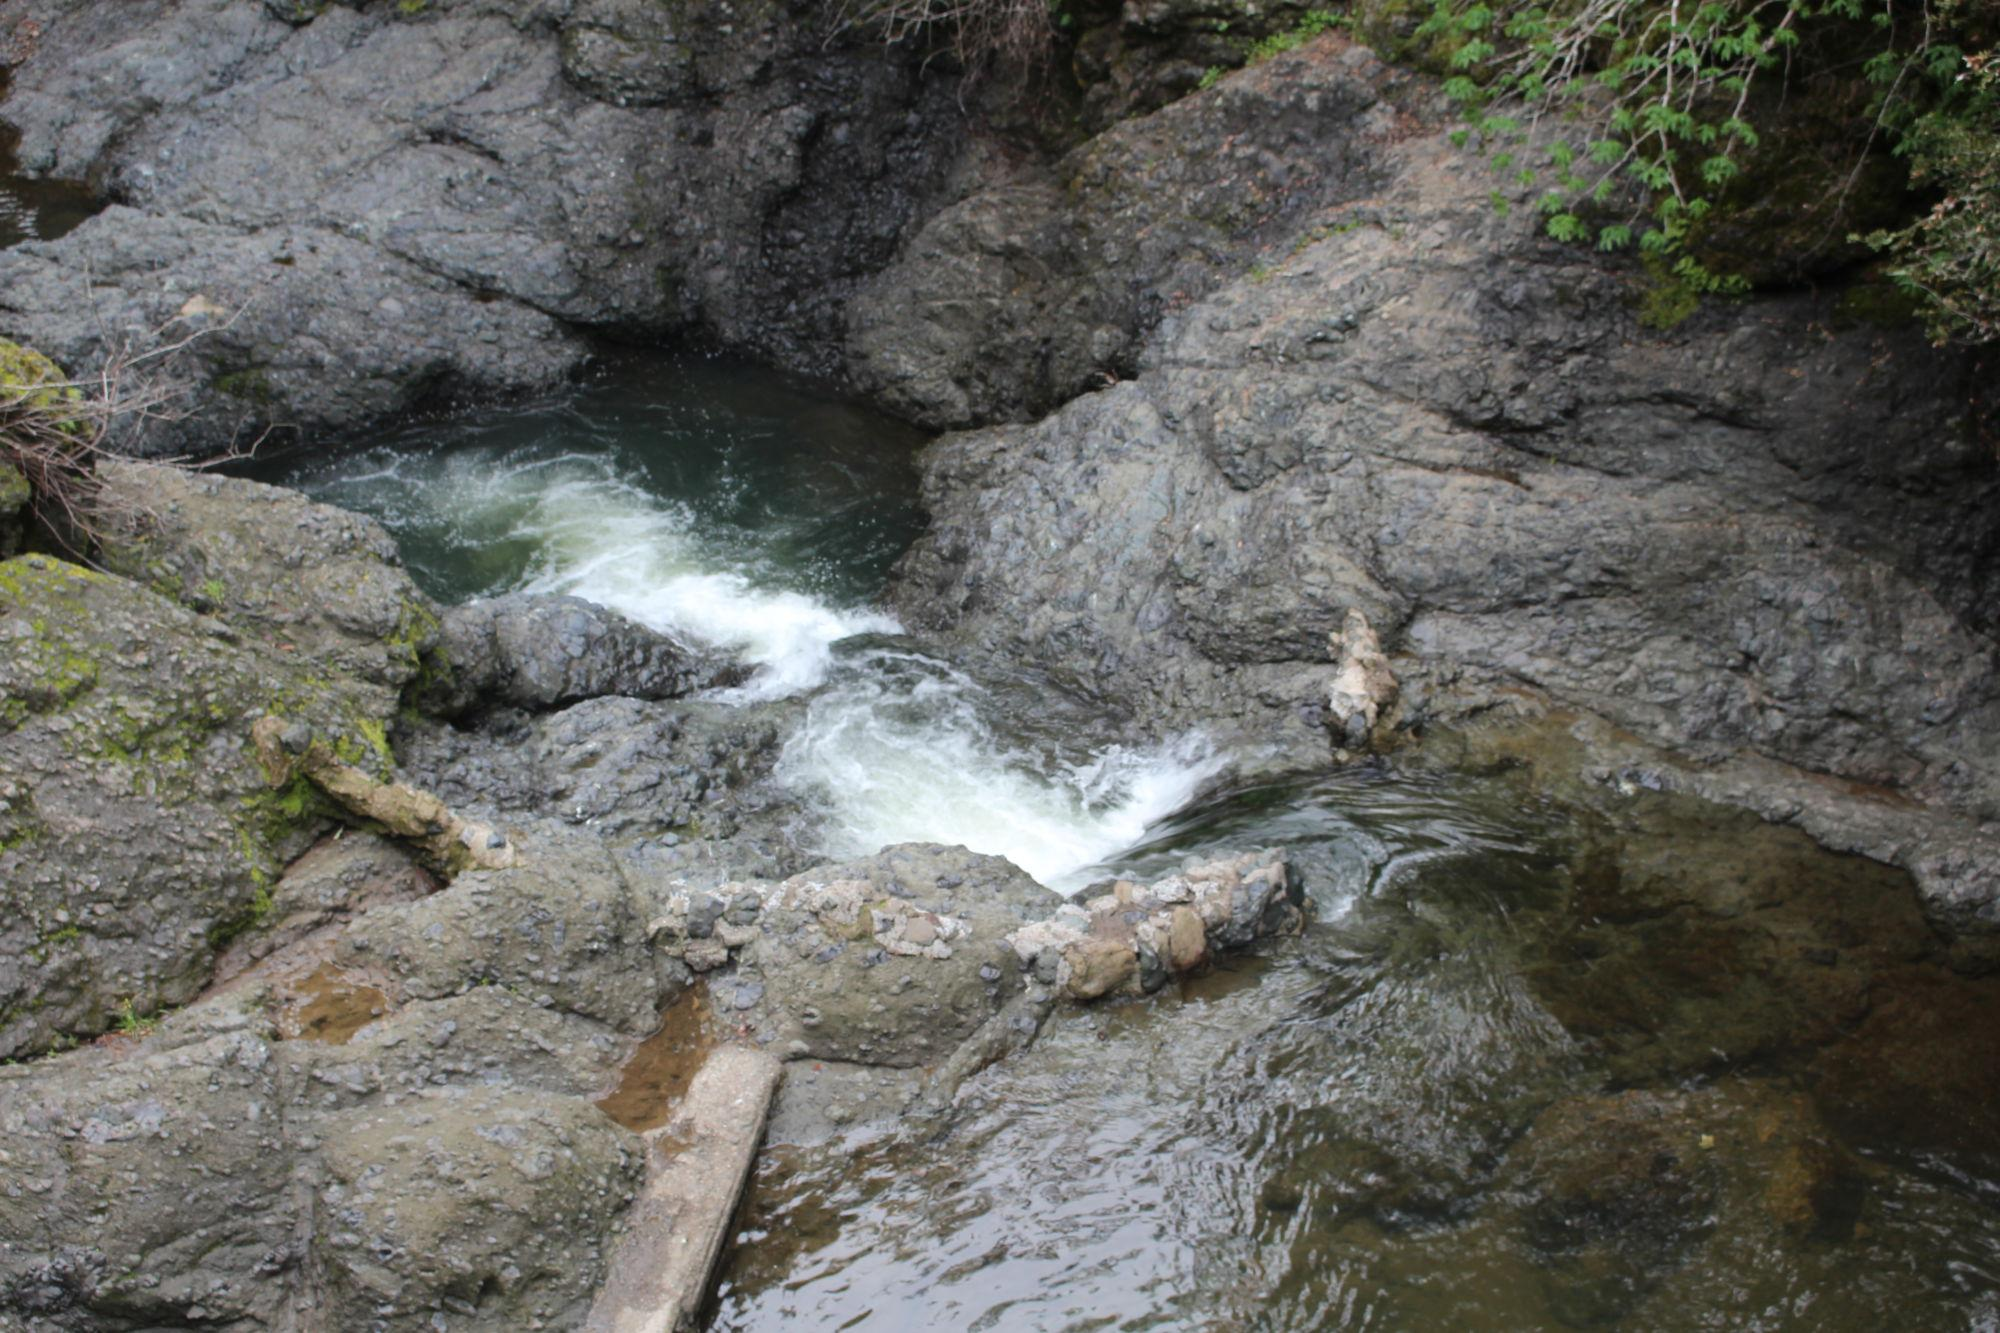 Waterfalls and swimming holes: the natural pools of Marin County